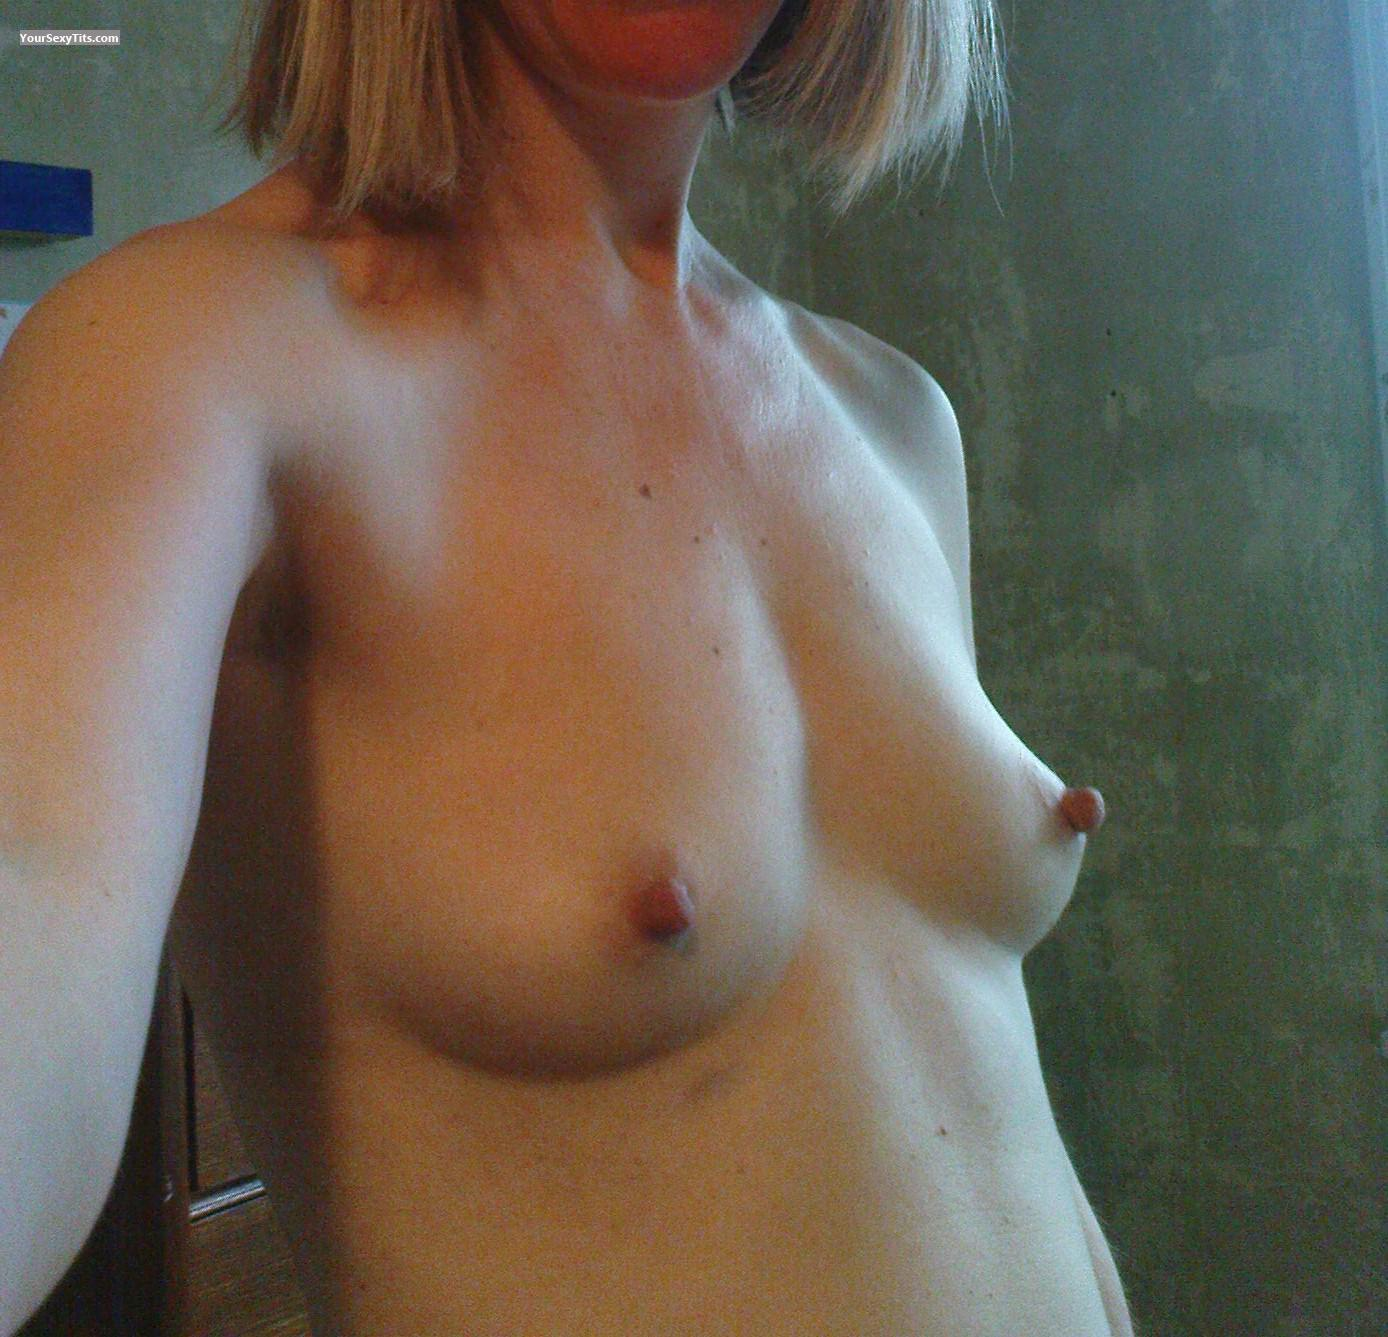 My girlfriend small tits big nipples consider, that